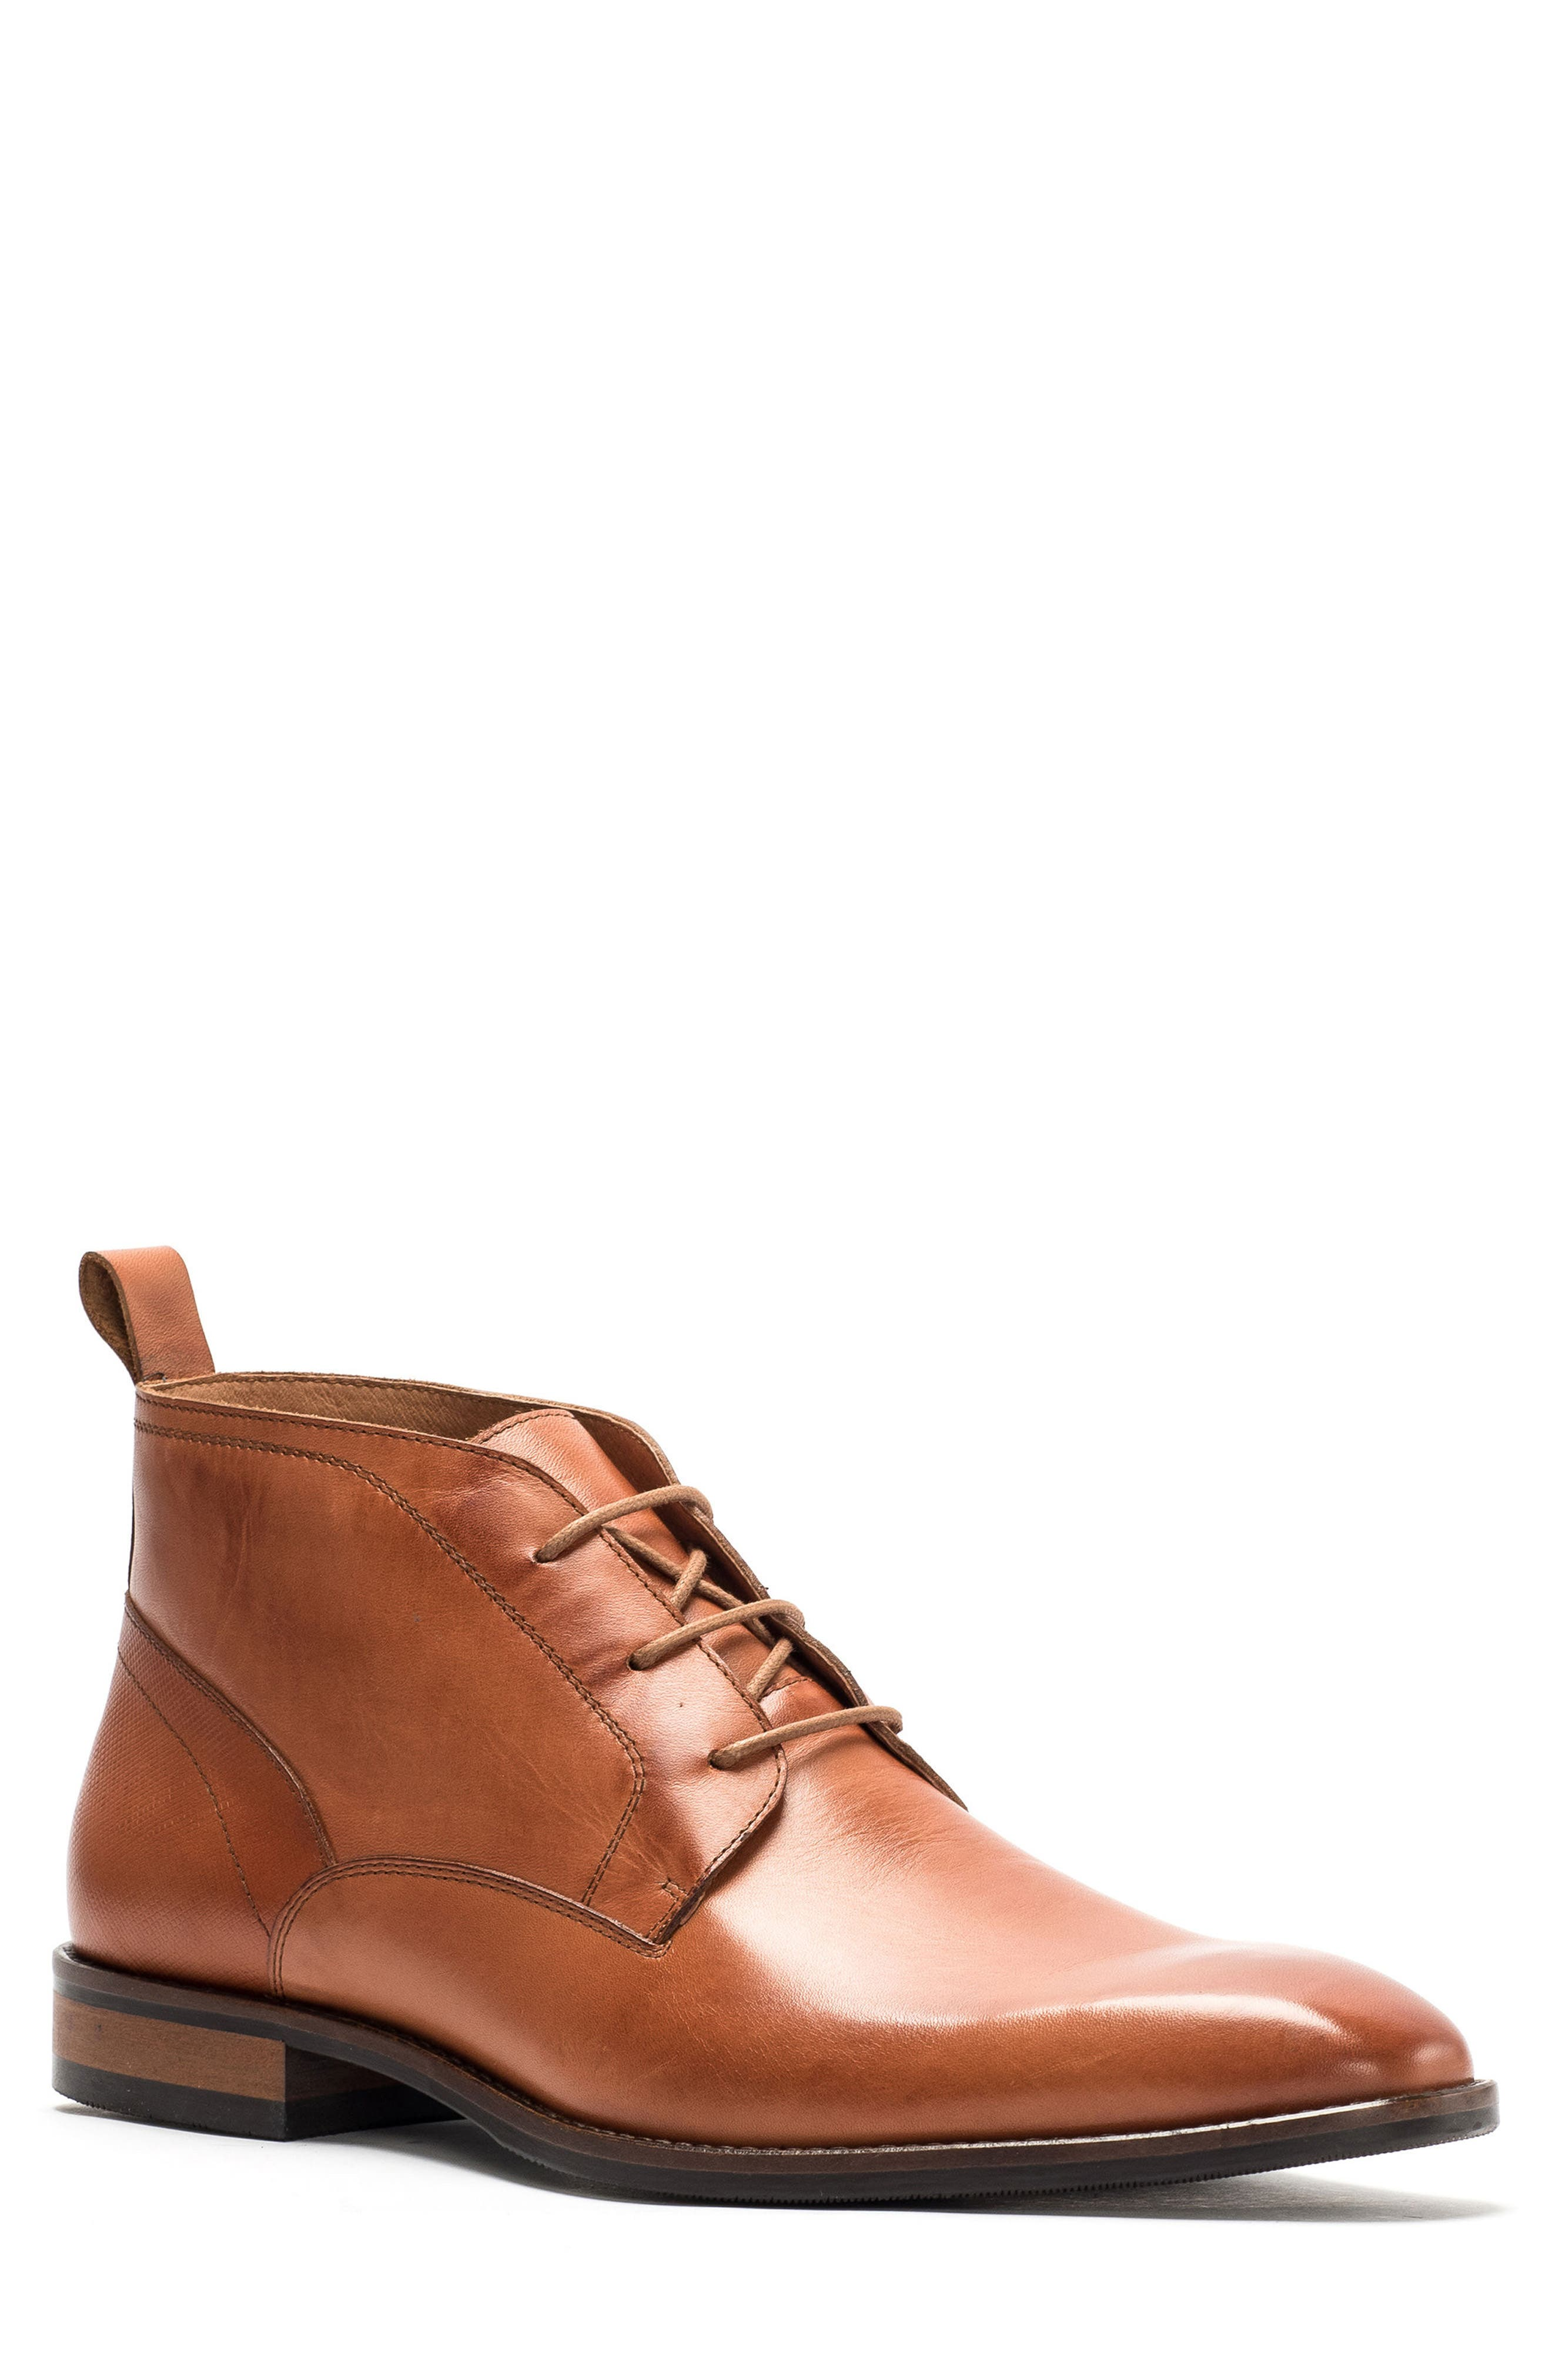 Wellington St. Chukka Boot,                         Main,                         color, TAN